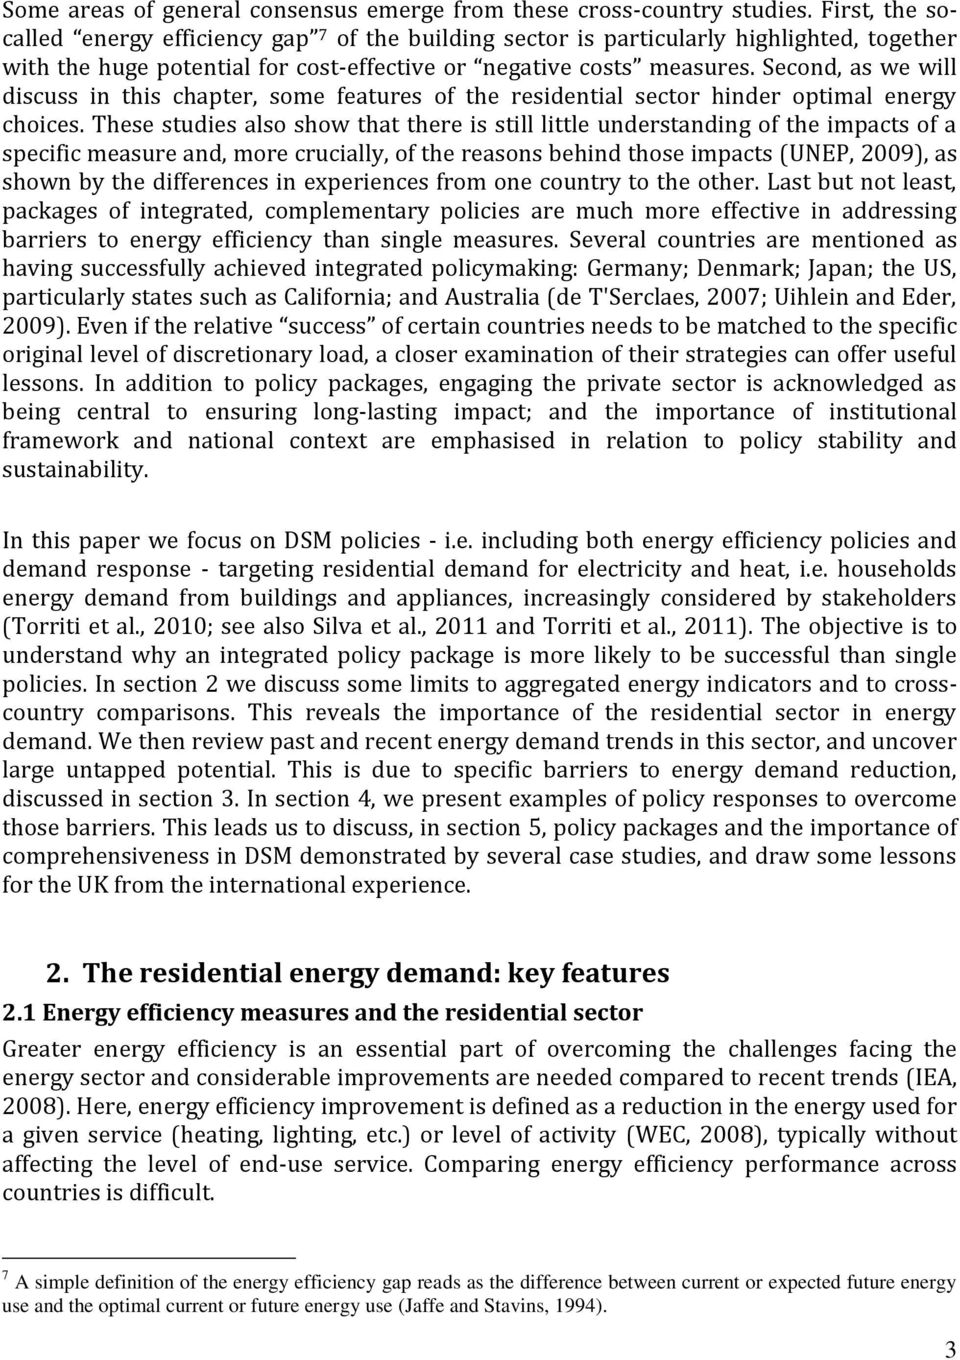 Second, as we will discuss in this chapter, some features of the residential sector hinder optimal energy choices.